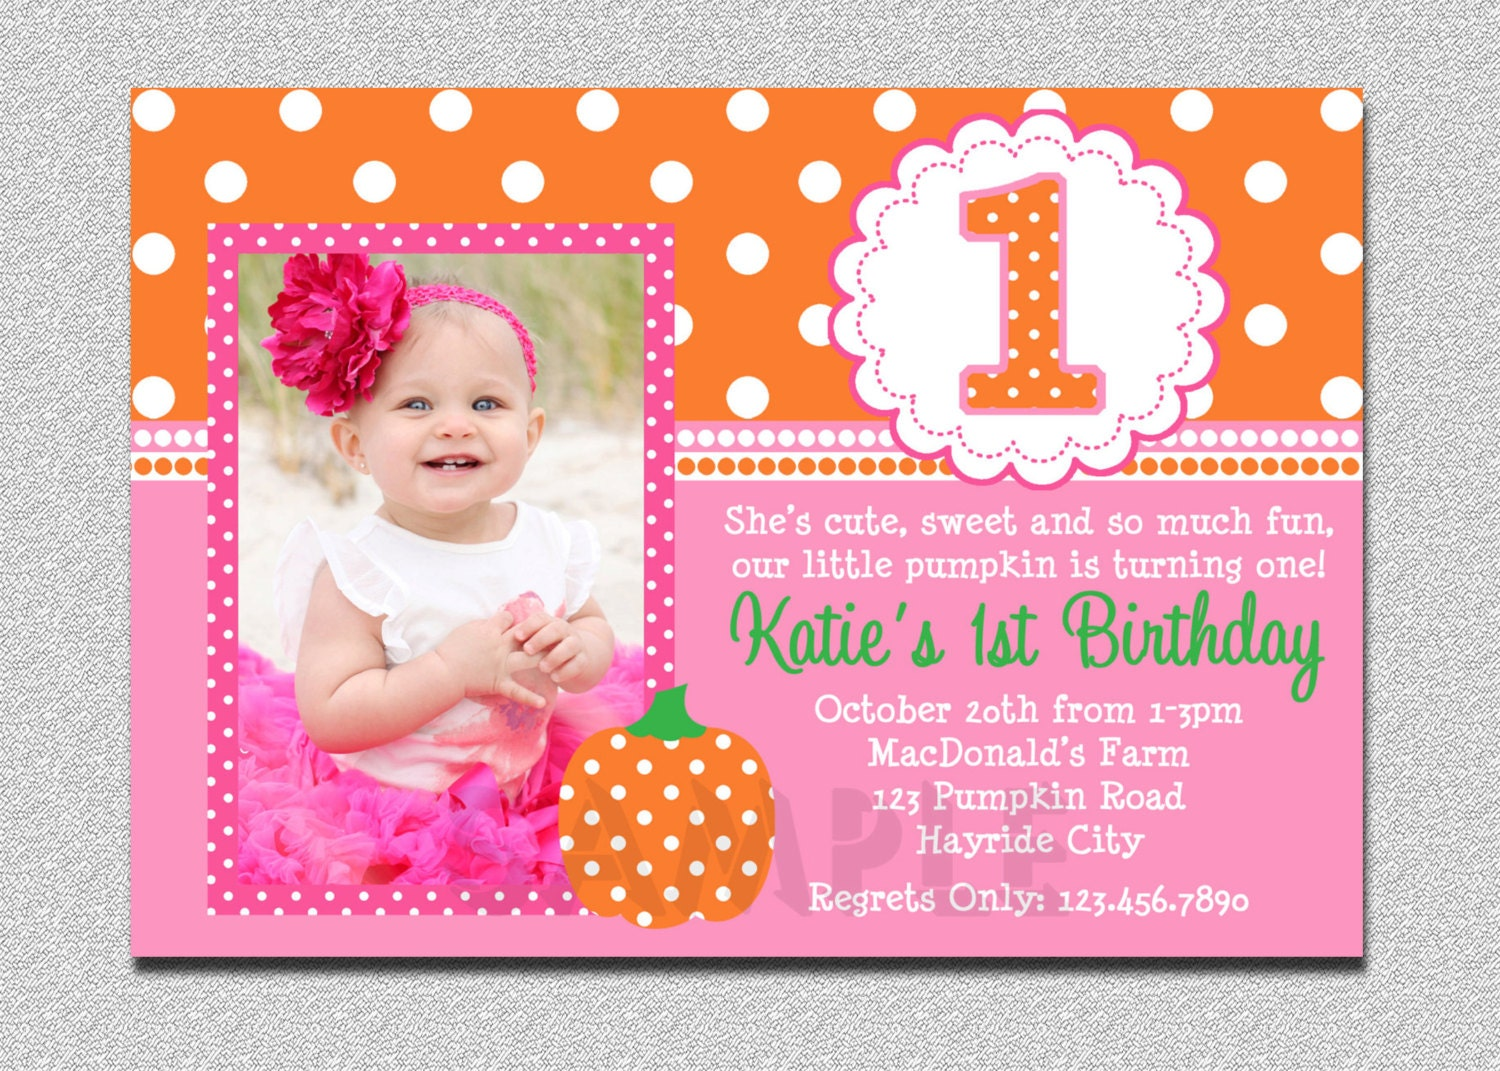 First Birthday Invite is one of our best ideas you might choose for invitation design